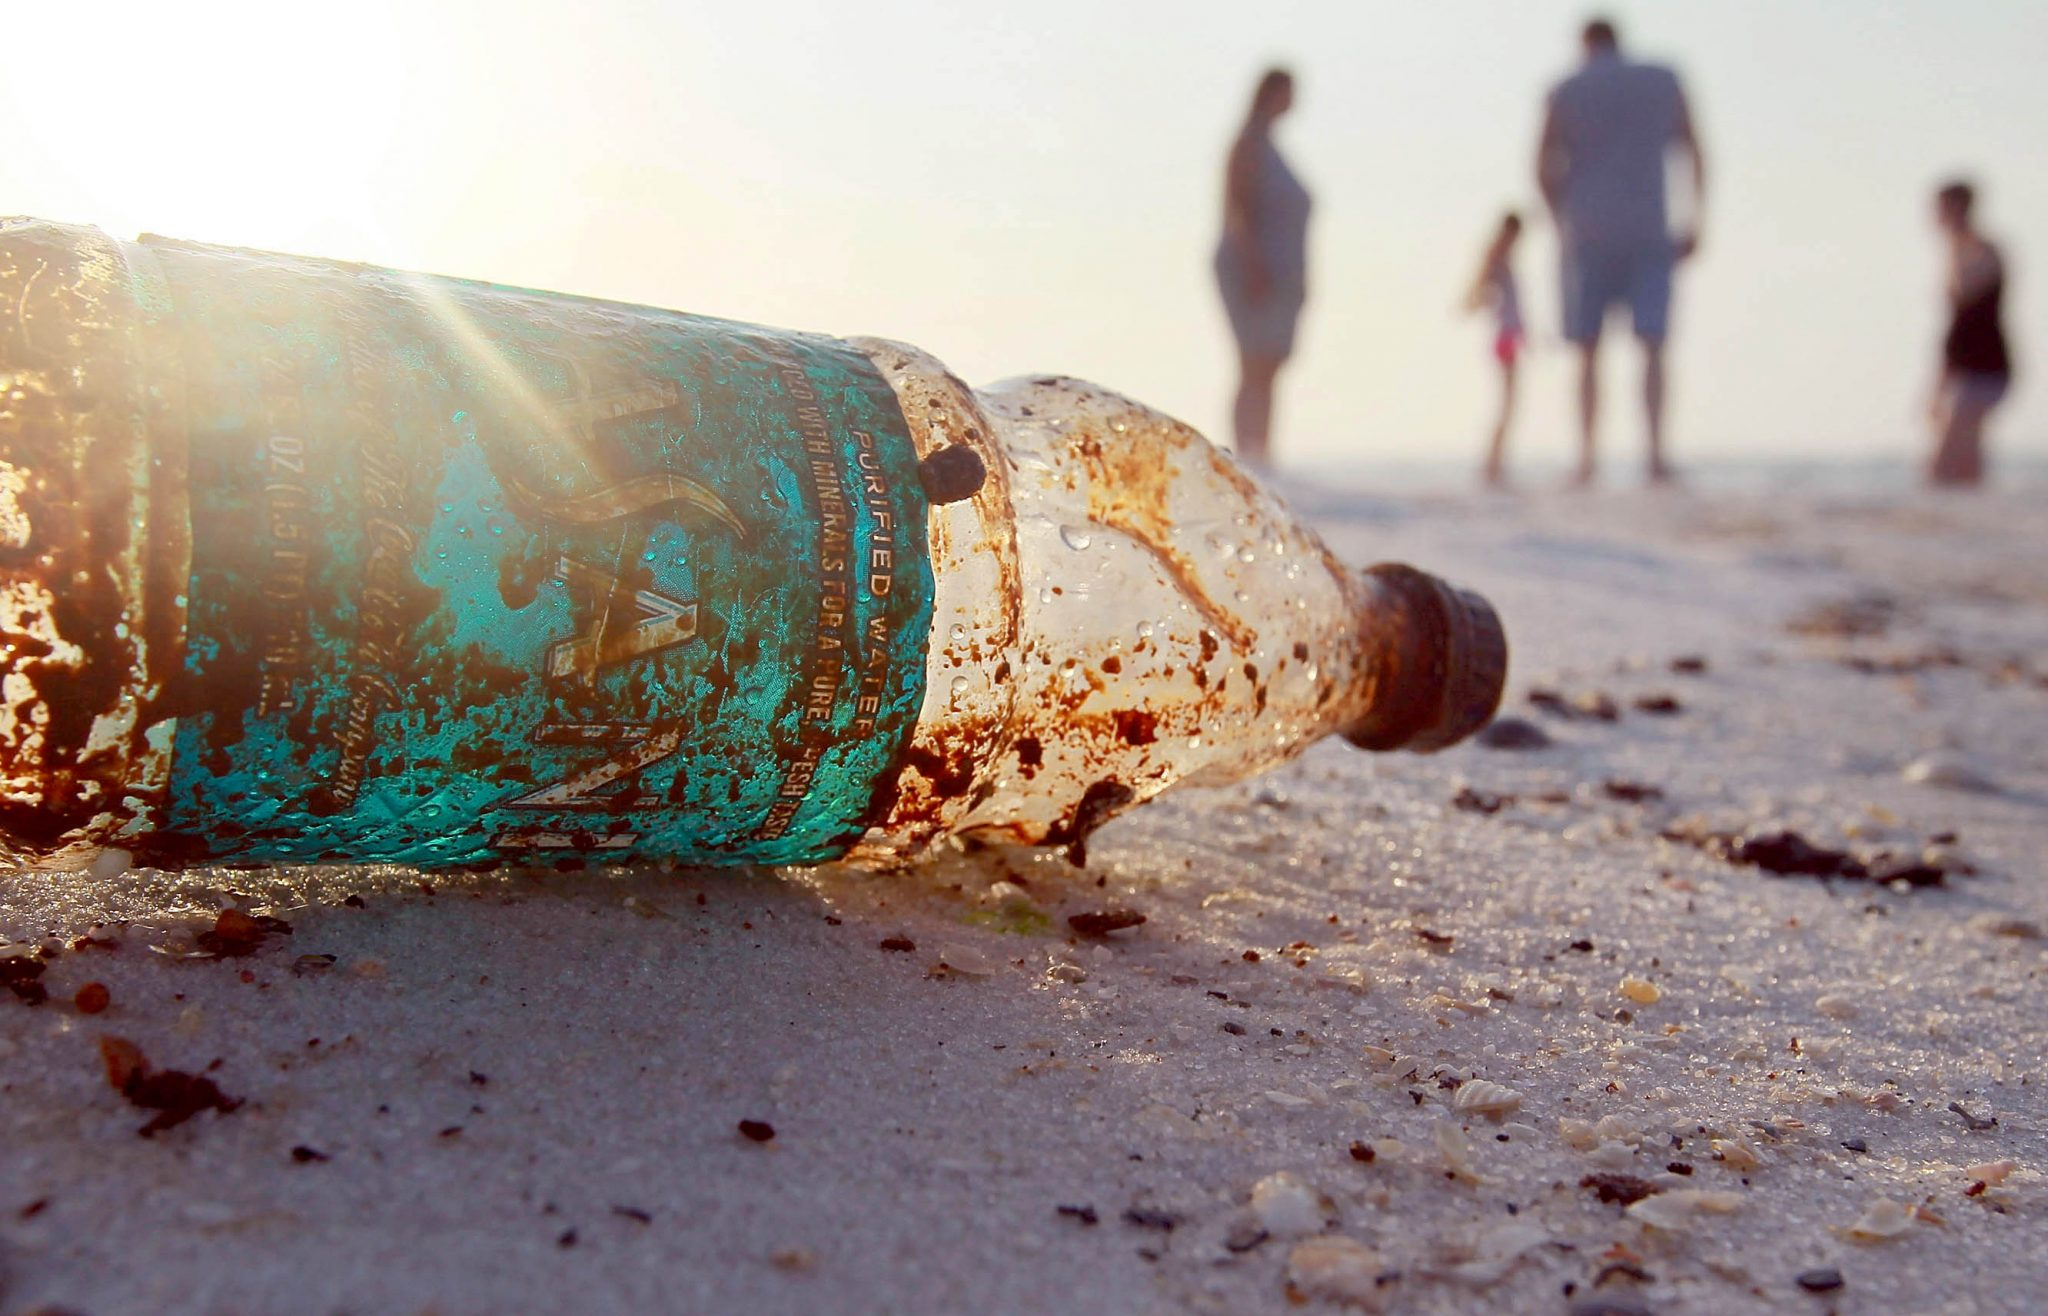 PENSACOLA, FL - JUNE 06:  A plastic bottle is seen coated in oil on Pensacola Beach as oil makes its way on shore from the Deepwater Horizon oil spill in the Gulf of Mexico on June 6, 2010 in Pensacola, Florida. Early reports indicate that BP's latest plan to stem the flow of oil from the site of the Deepwater Horizon incident may be having some sucess.  (Photo by Joe Raedle/Getty Images)